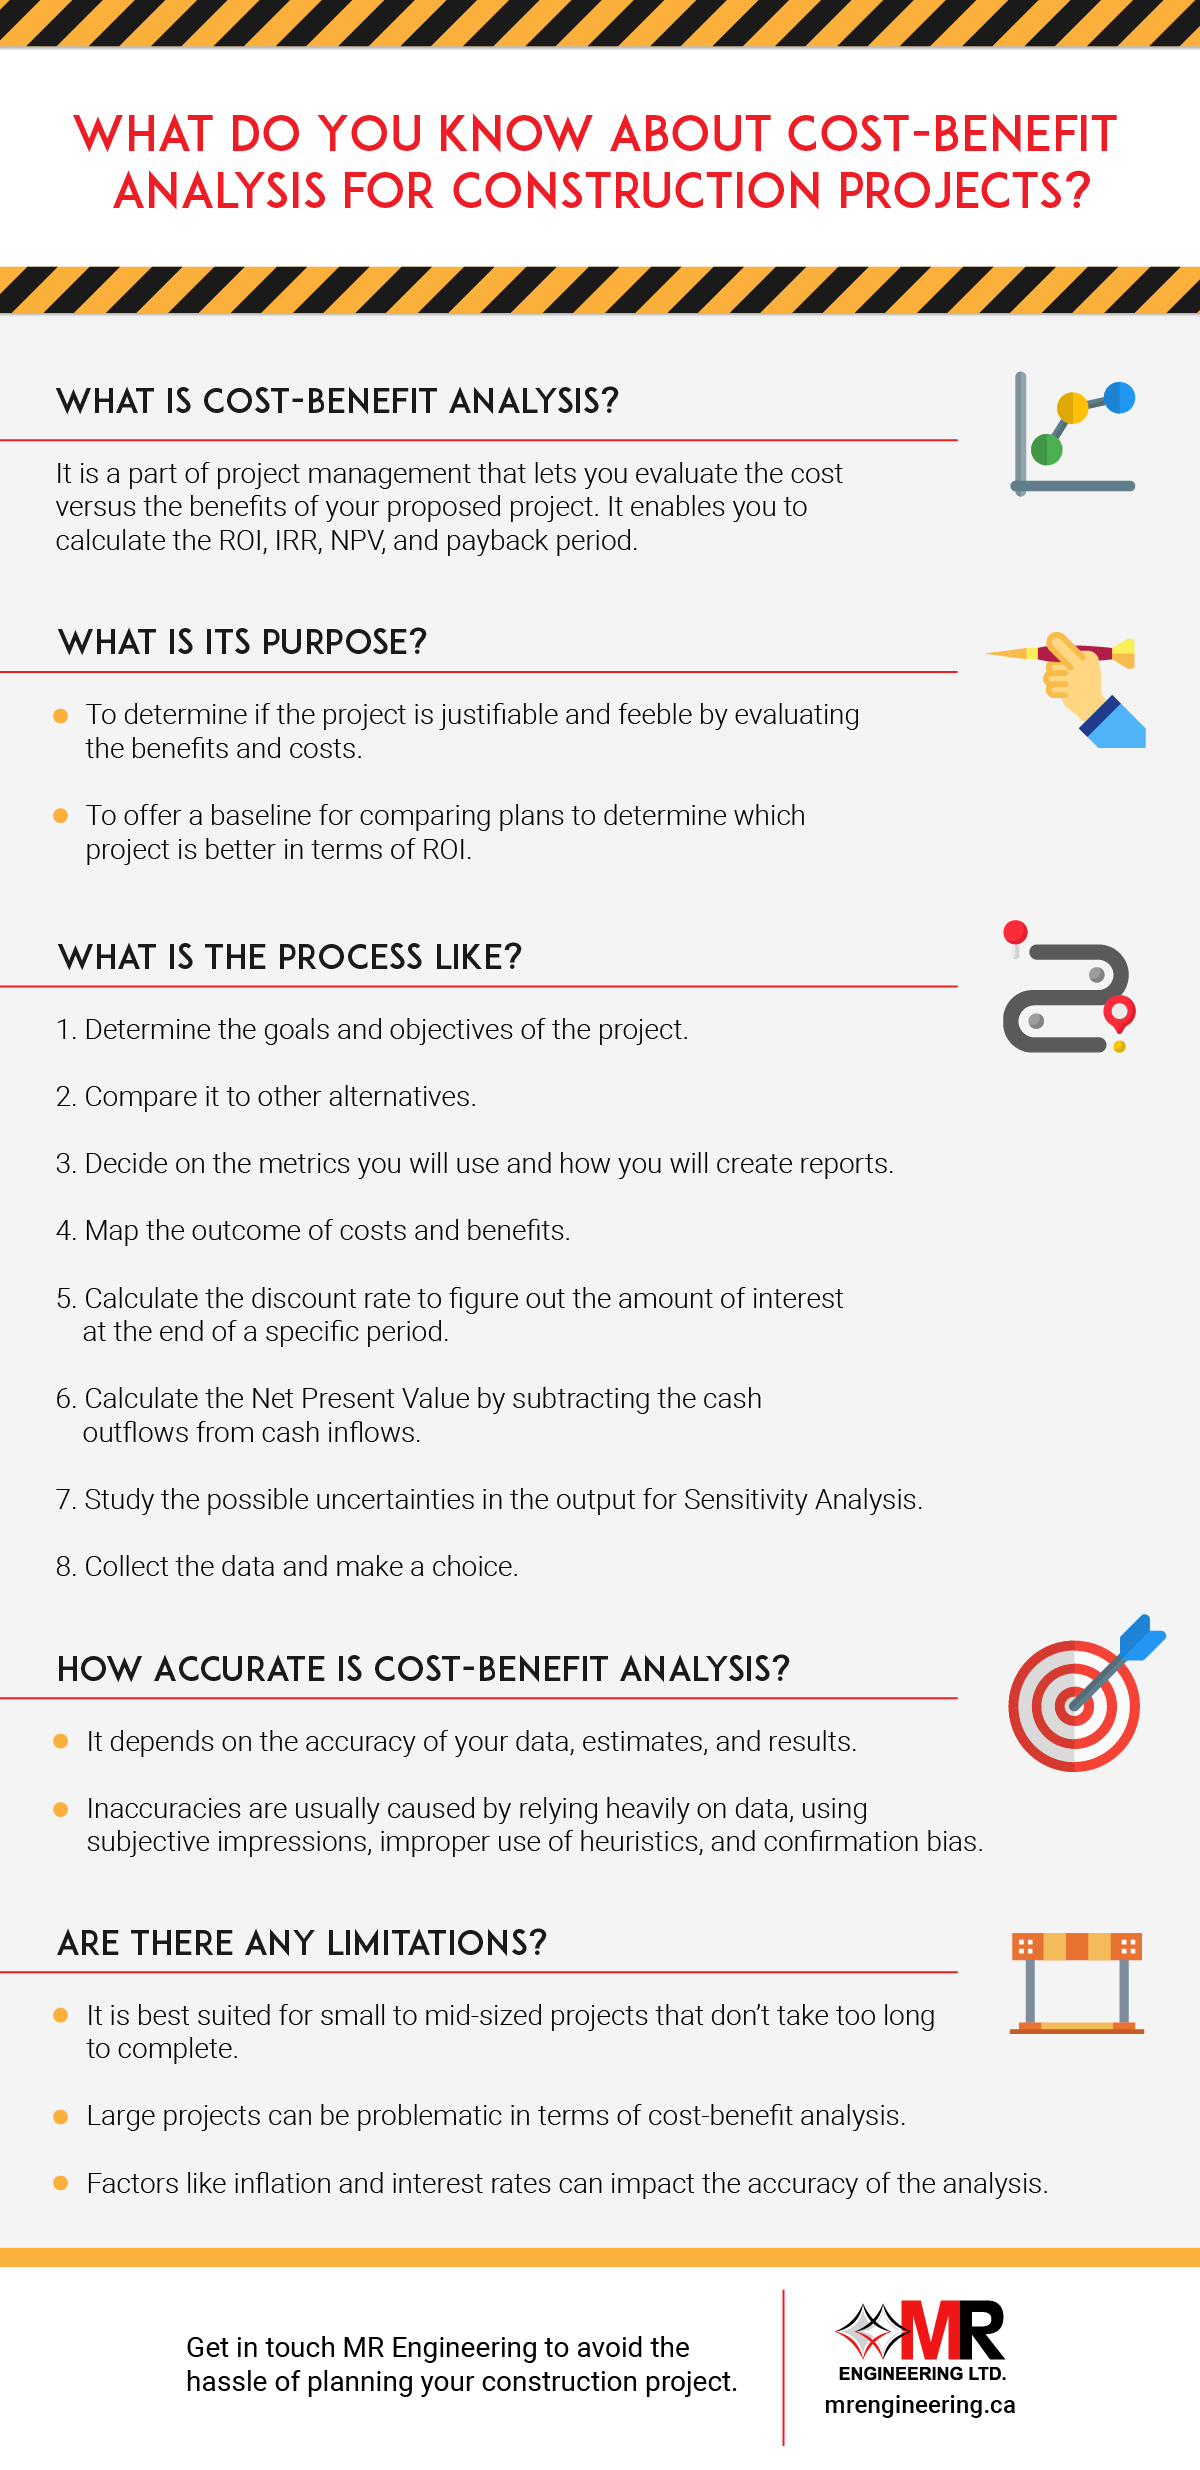 Know About Cost-Benefit Analysis For Construction Projects